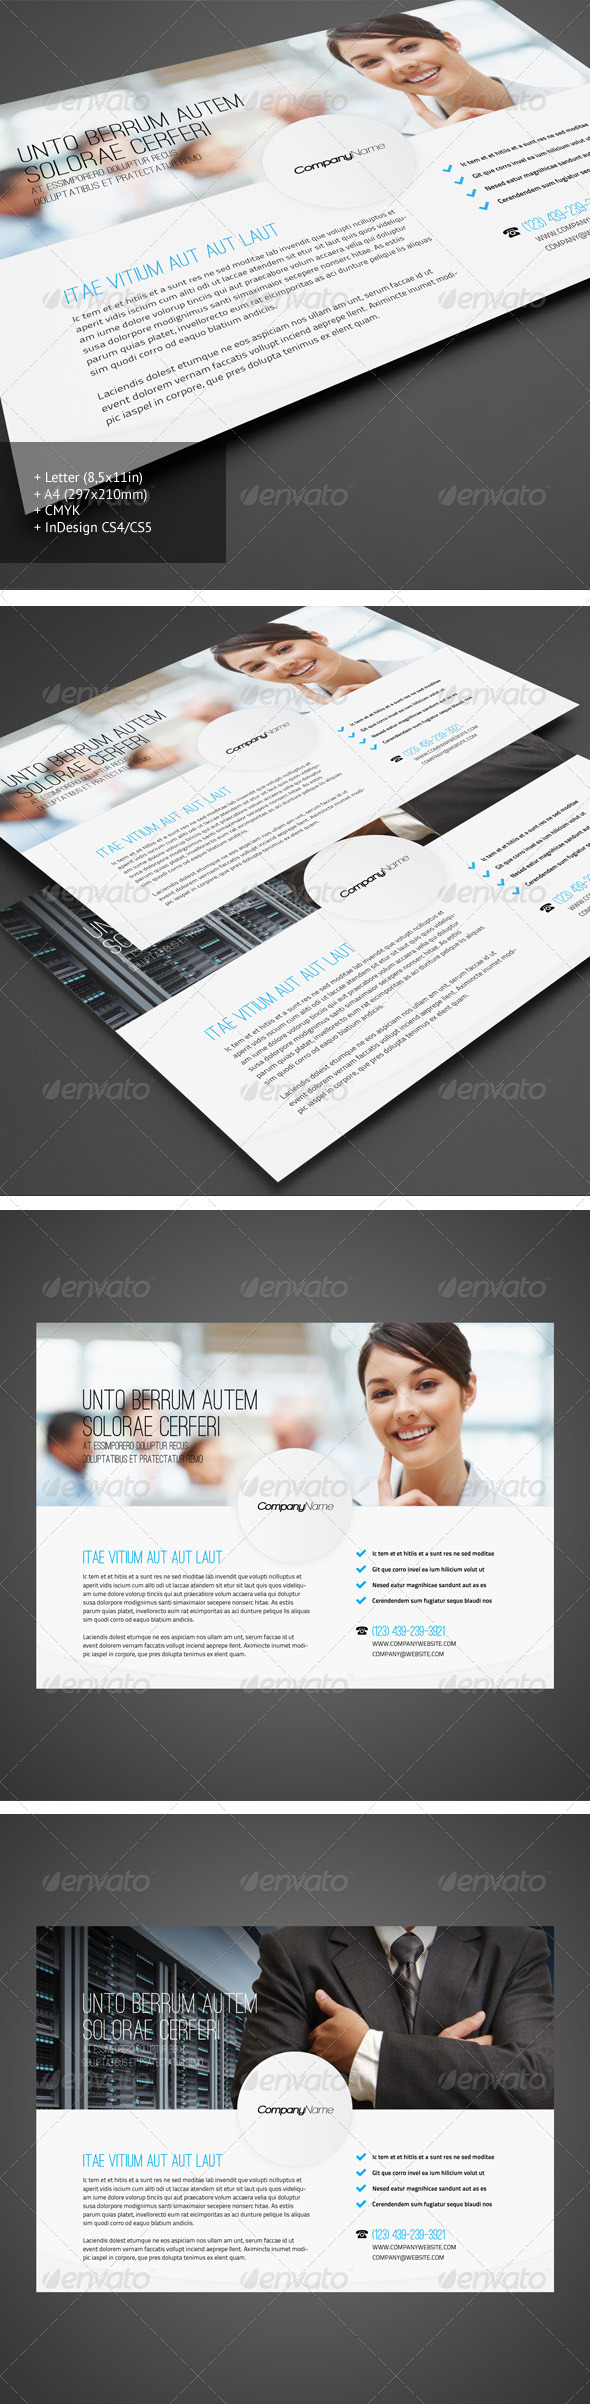 GraphicRiver Corporate Flyer 2 2917955